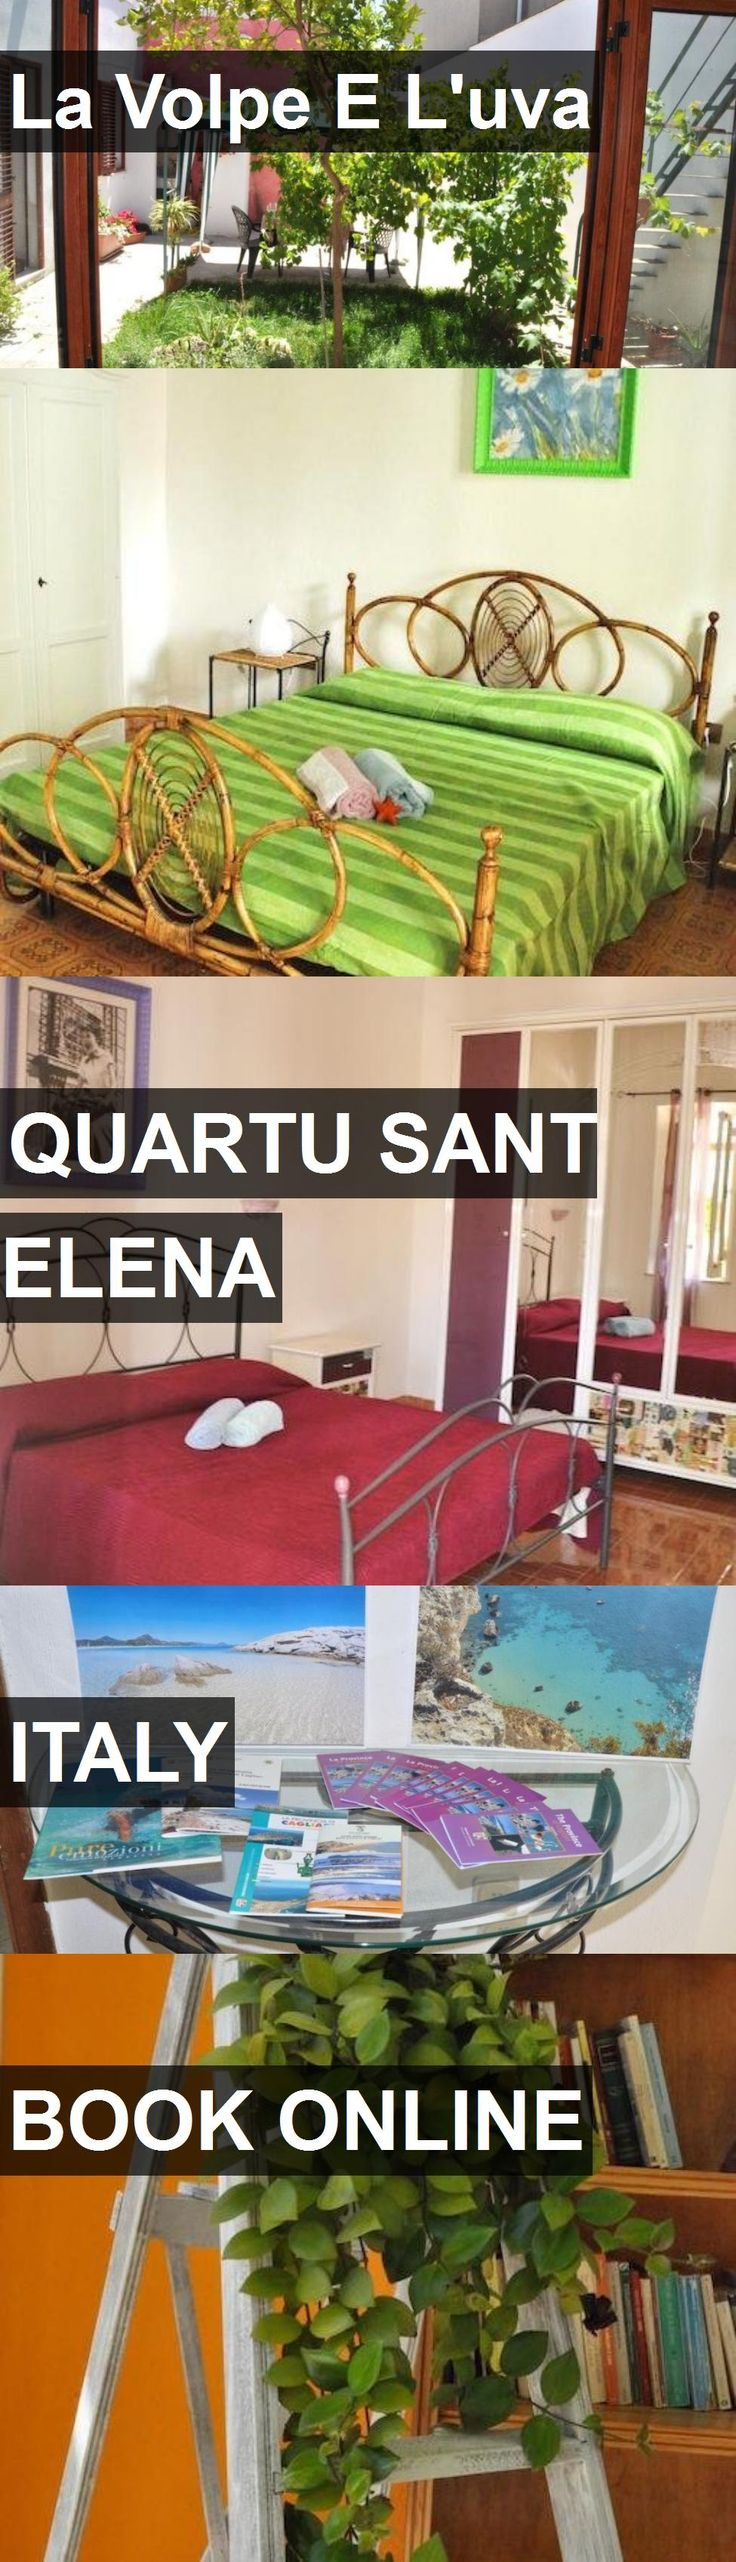 Hotel La Volpe E L'uva in Quartu Sant Elena, Italy. For more information, photos, reviews and best prices please follow the link. #Italy #QuartuSantElena #travel #vacation #hotel